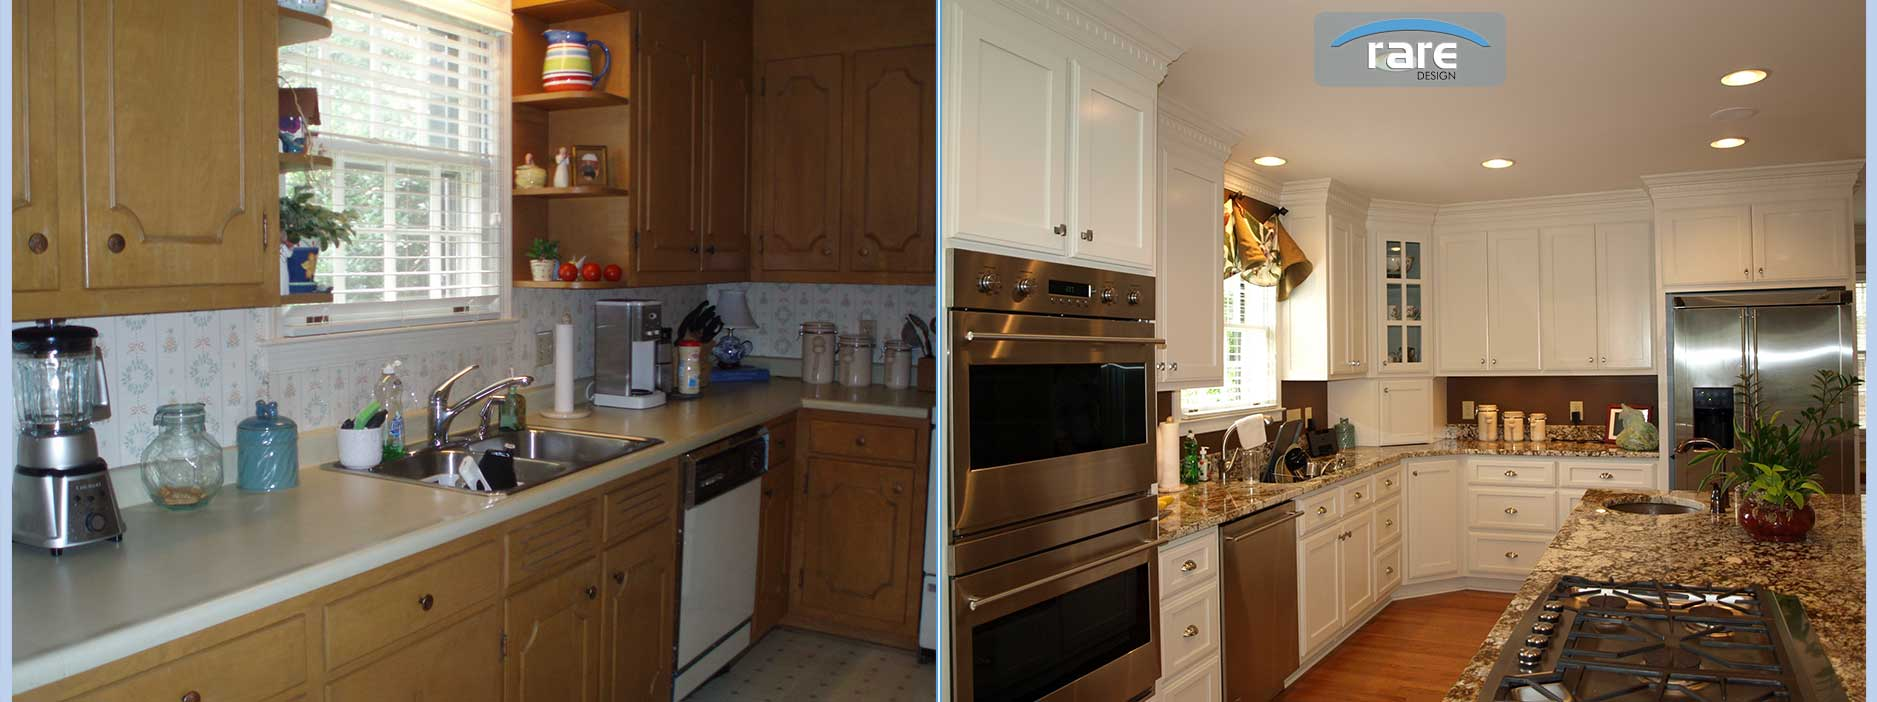 080 greenville home remodel rare design before and after shaw kitchen2